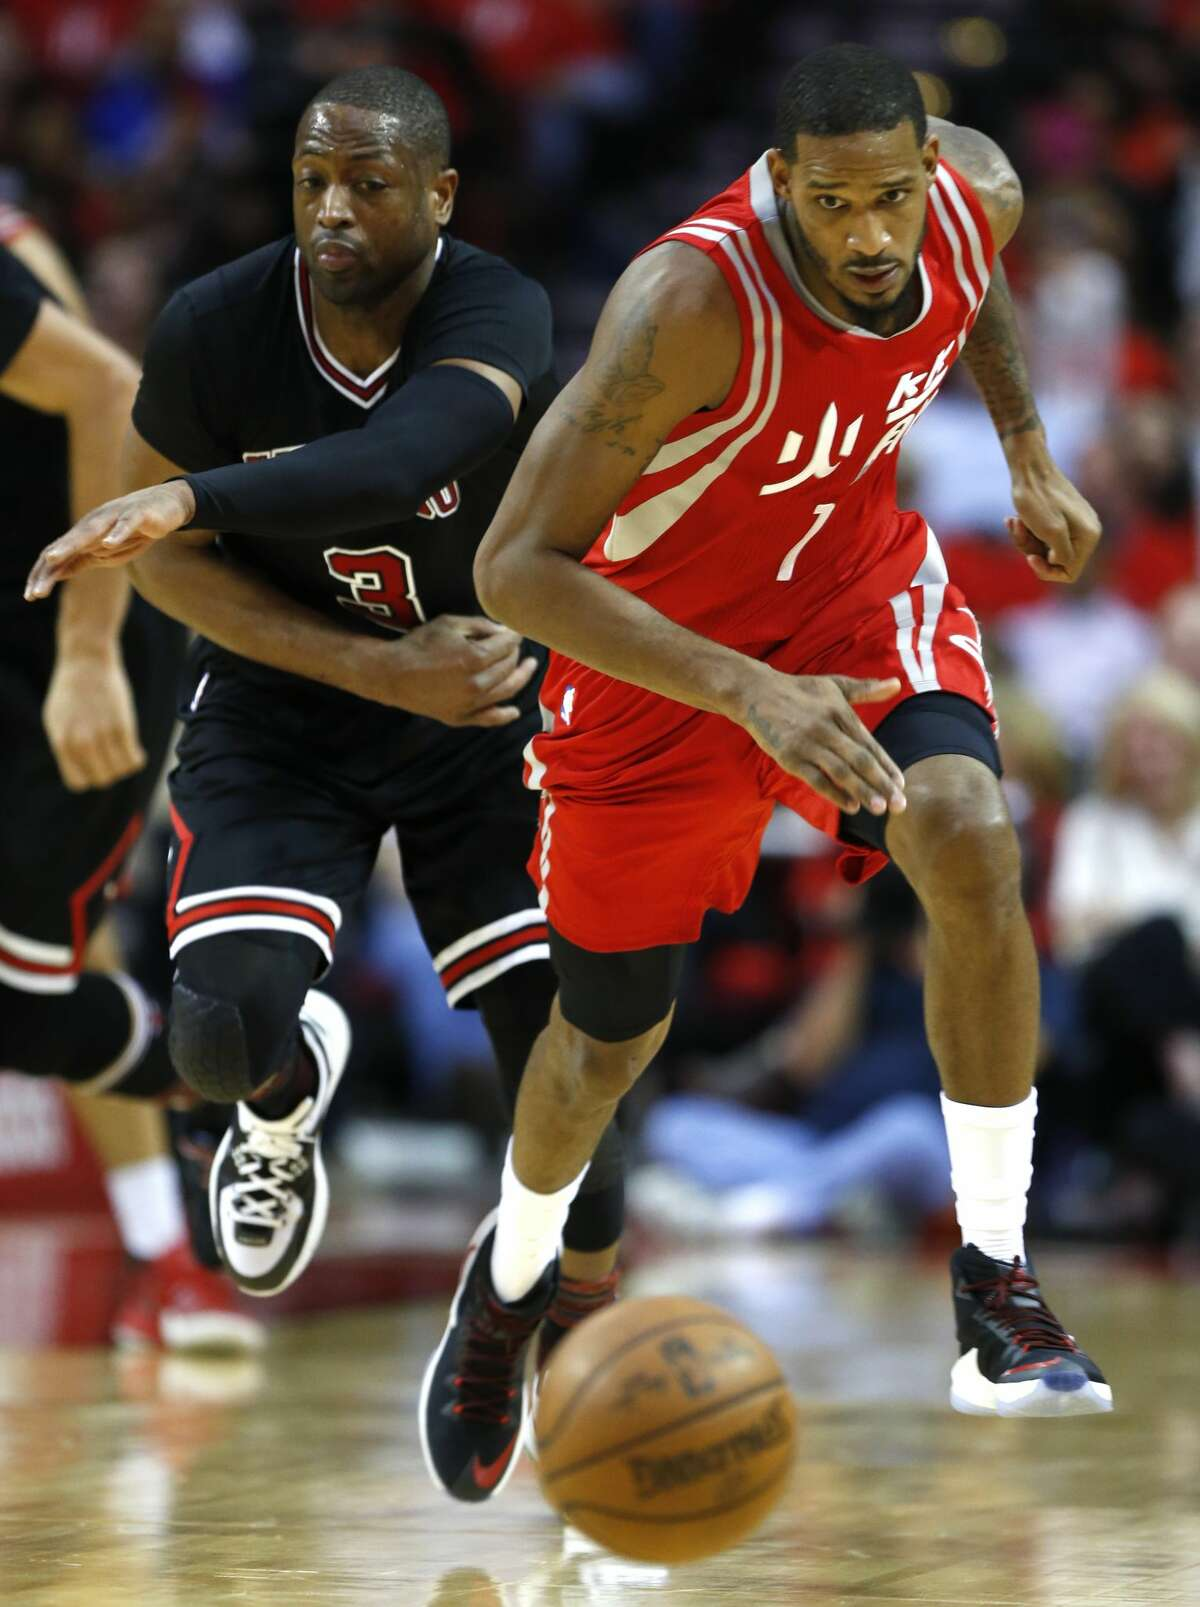 Houston Rockets forward Trevor Ariza (1) and Chicago Bulls guard Dwyane Wade (3) chase after a loose ball during the fourth quarter of an NBA basketball game at Toyota Center on Friday, Feb. 3, 2017, in Houston. ( Brett Coomer / Houston Chronicle )